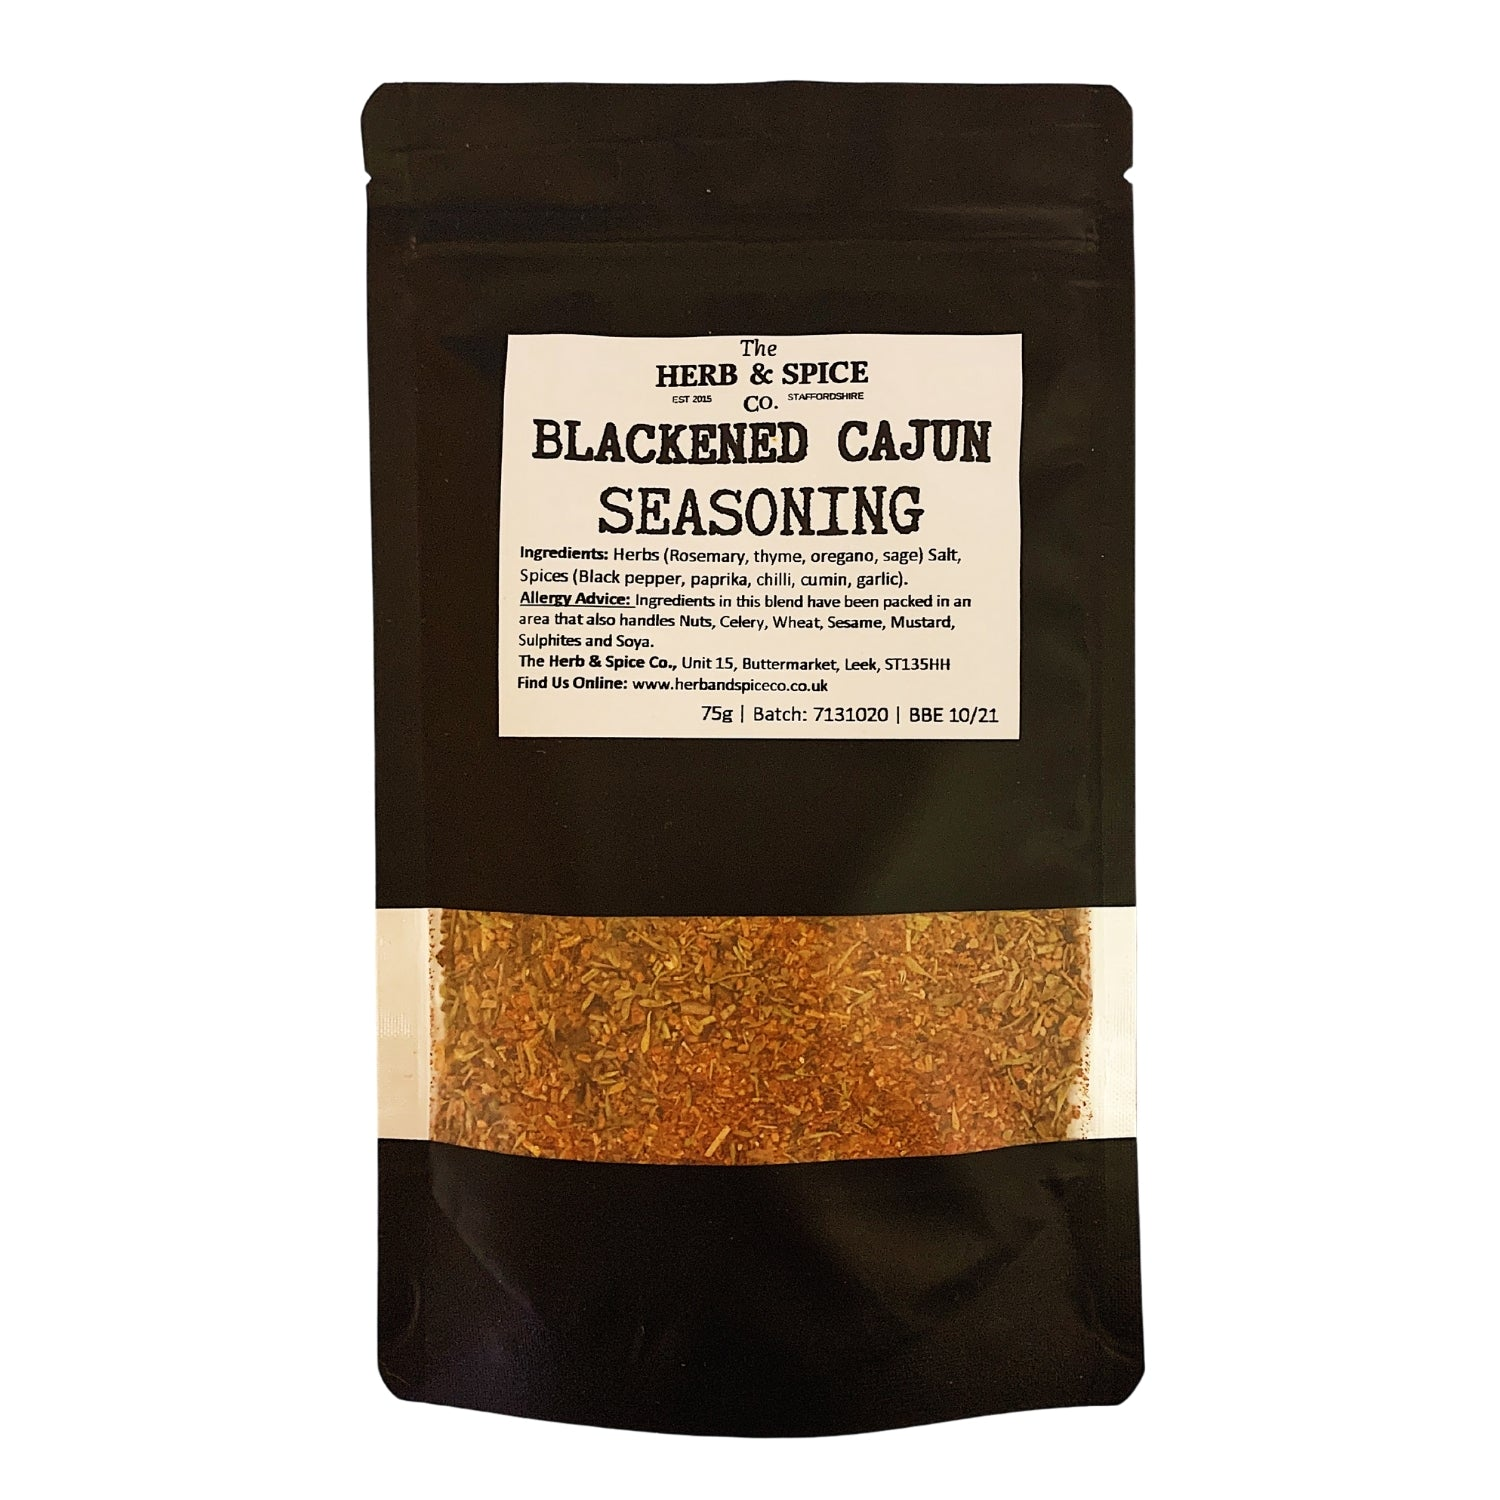 blackened cajun seasoning The Herb & Spice Co.